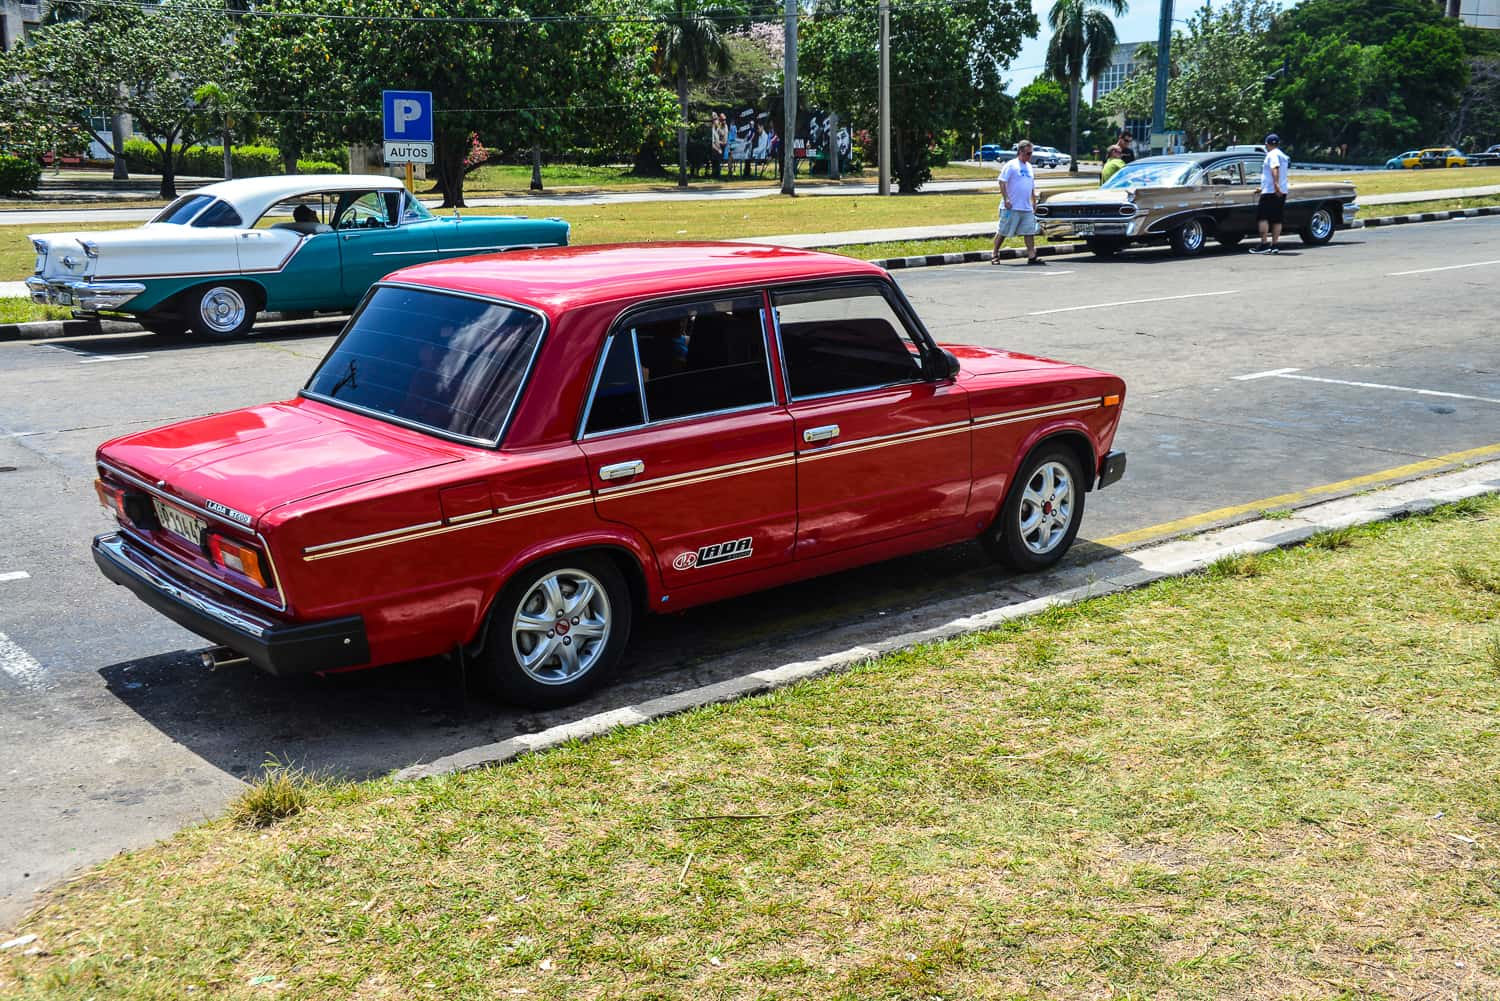 The Russian tribute to the world of cars ... the Lada.